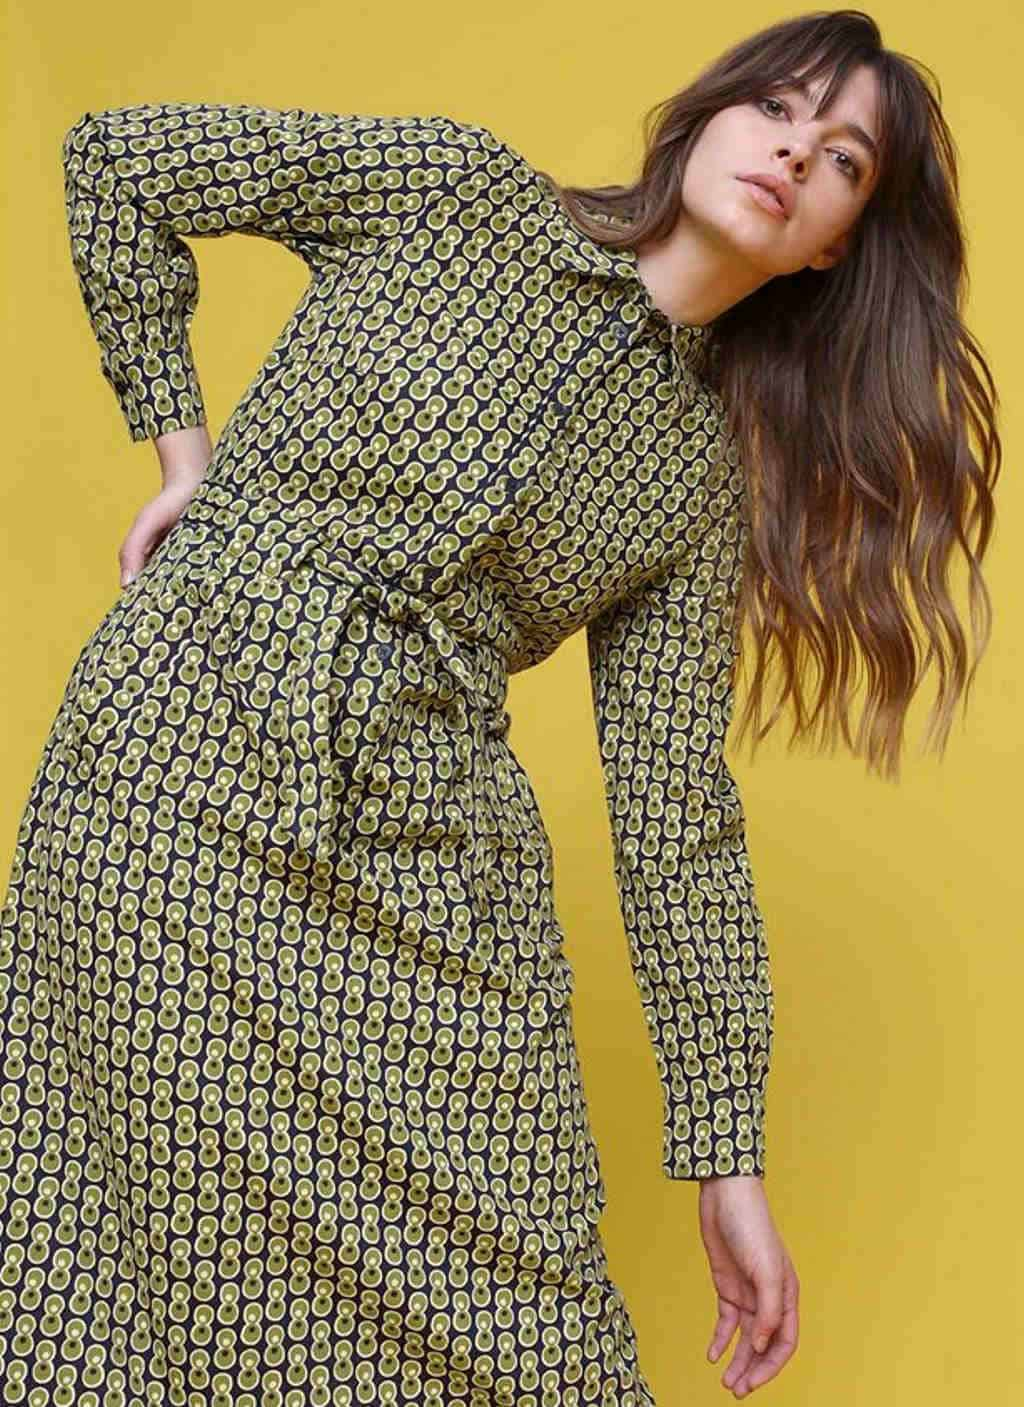 Ethically Made Fair Trade Dresses for Every Eco-cassion Image by People Tree #sustainablefashion #fairtrade #ethicallymade